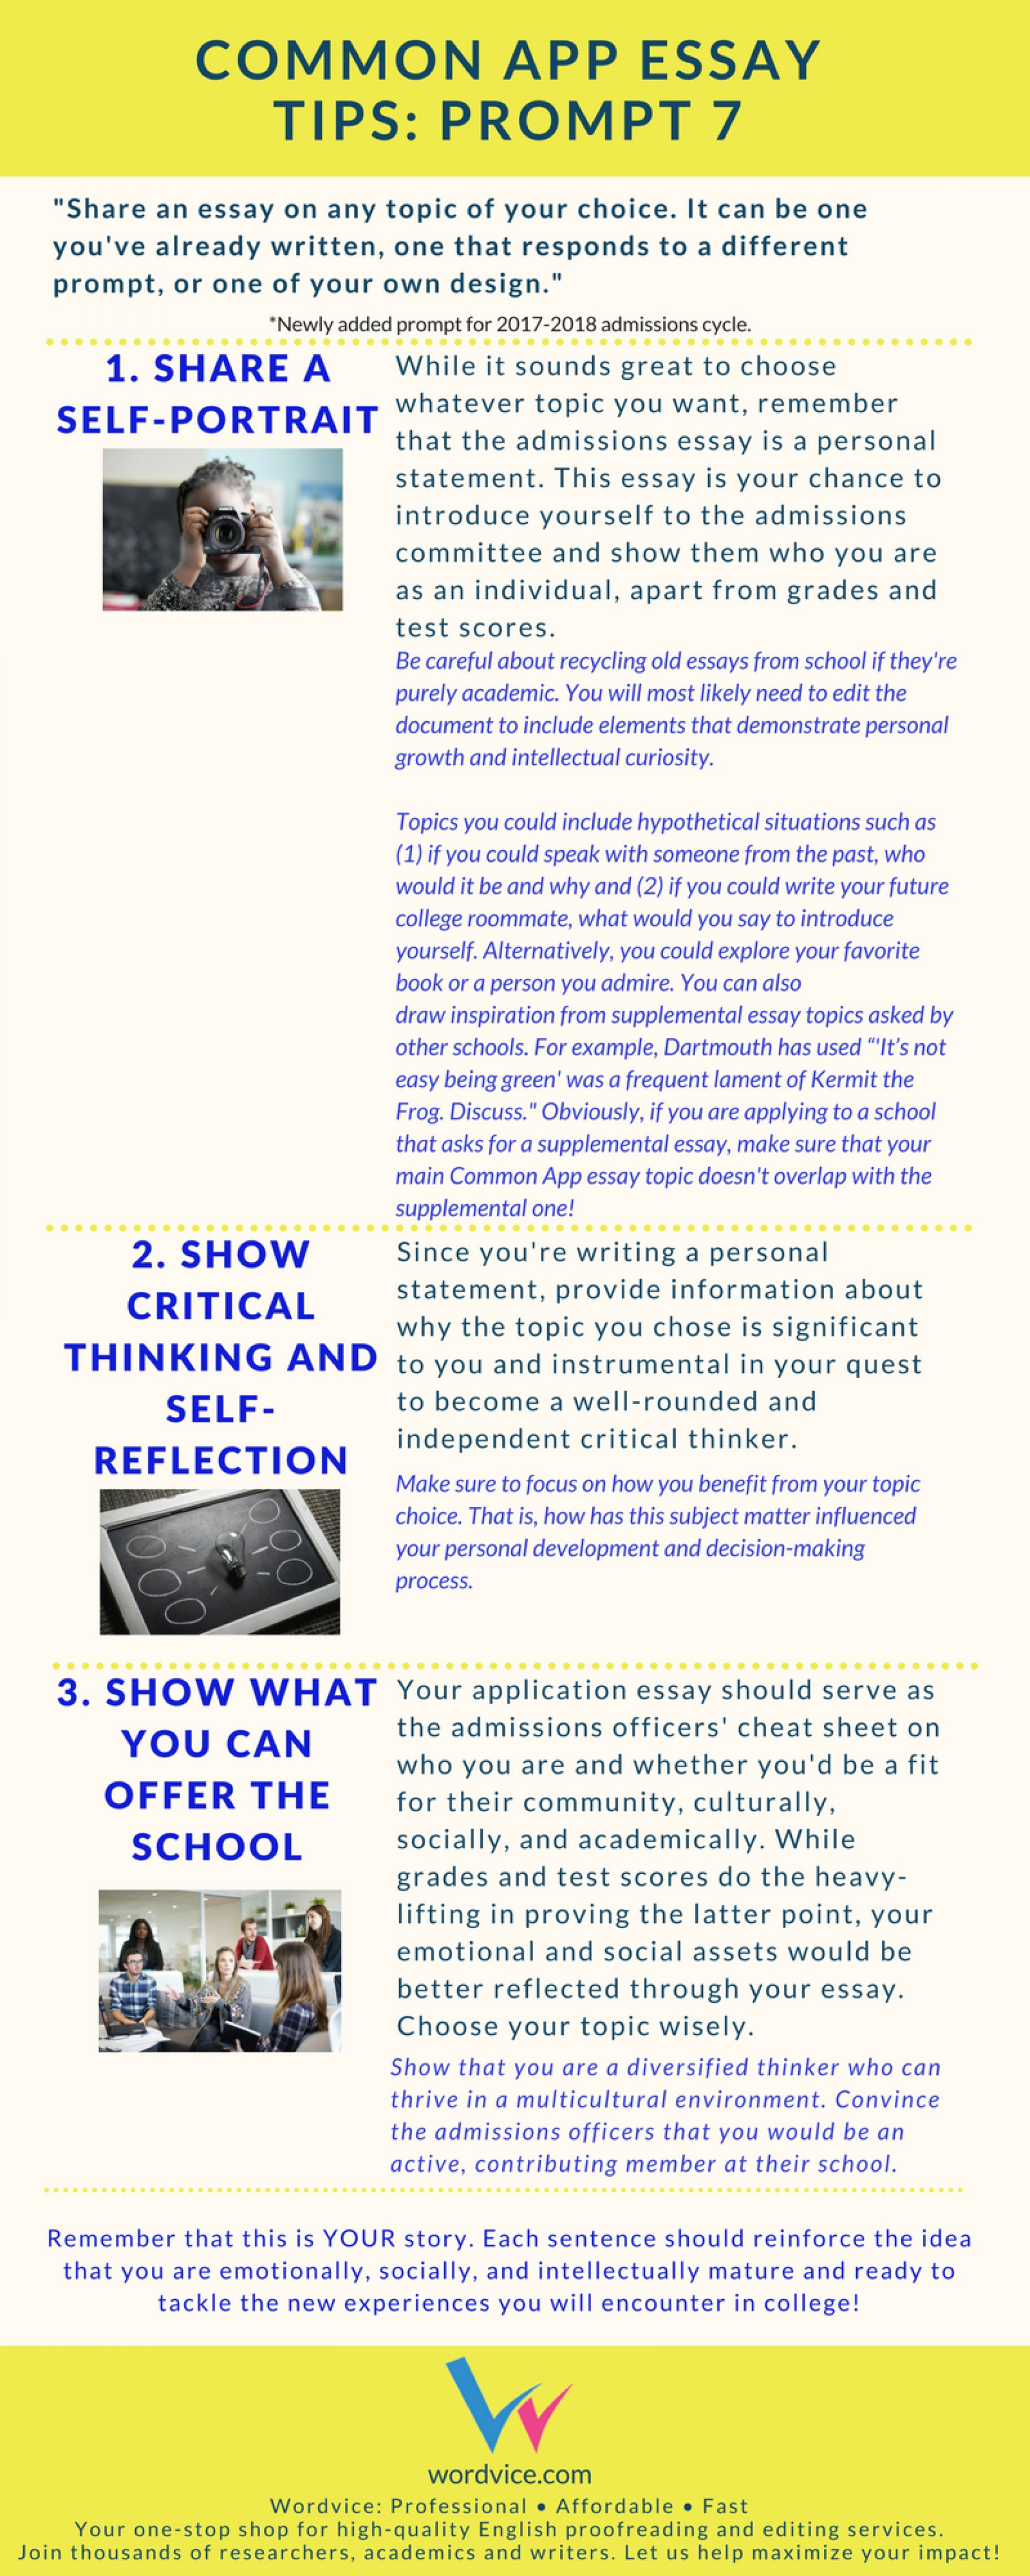 006 Common Application Essay Prompts App Brainstormprompt Imposing 2017 Examples Prompt 6 2015 1920